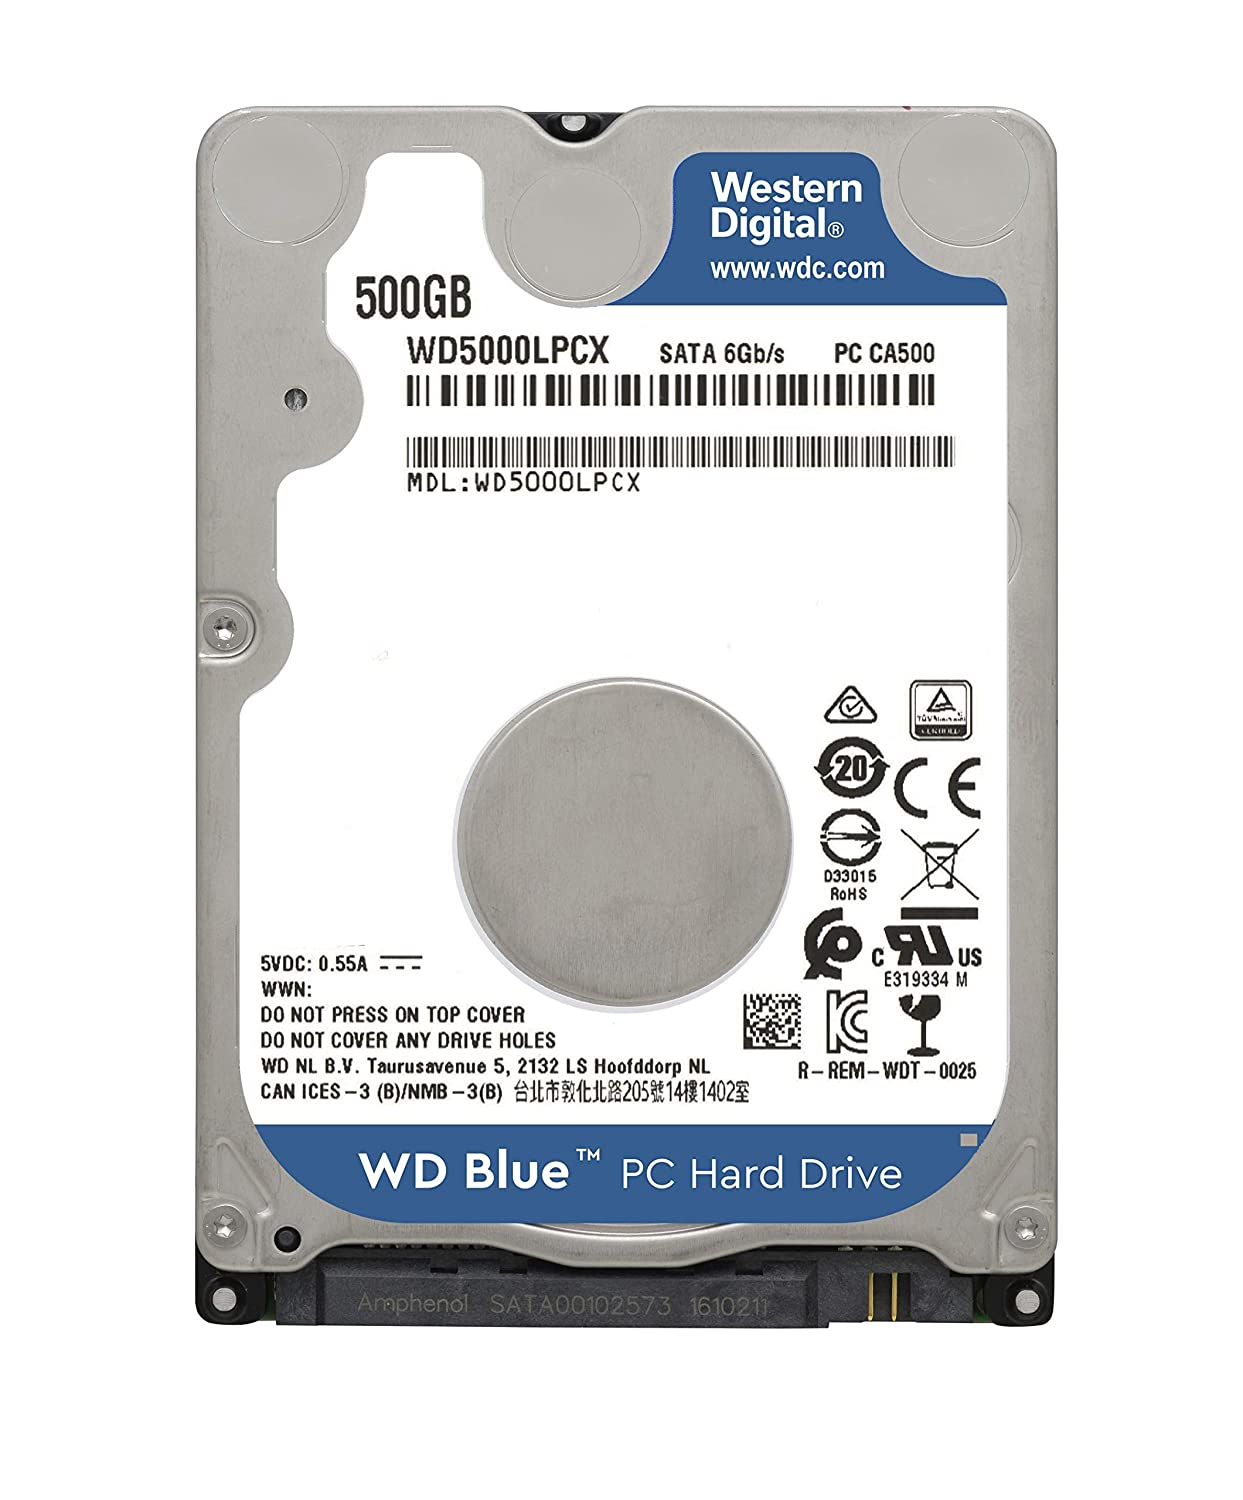 Amazon In Buy Western Digital Wd5000lpcx 500 Gb Sata 2 5 Inch Laptop Hard Drive Online At Low Prices In India Western Digital Reviews Ratings